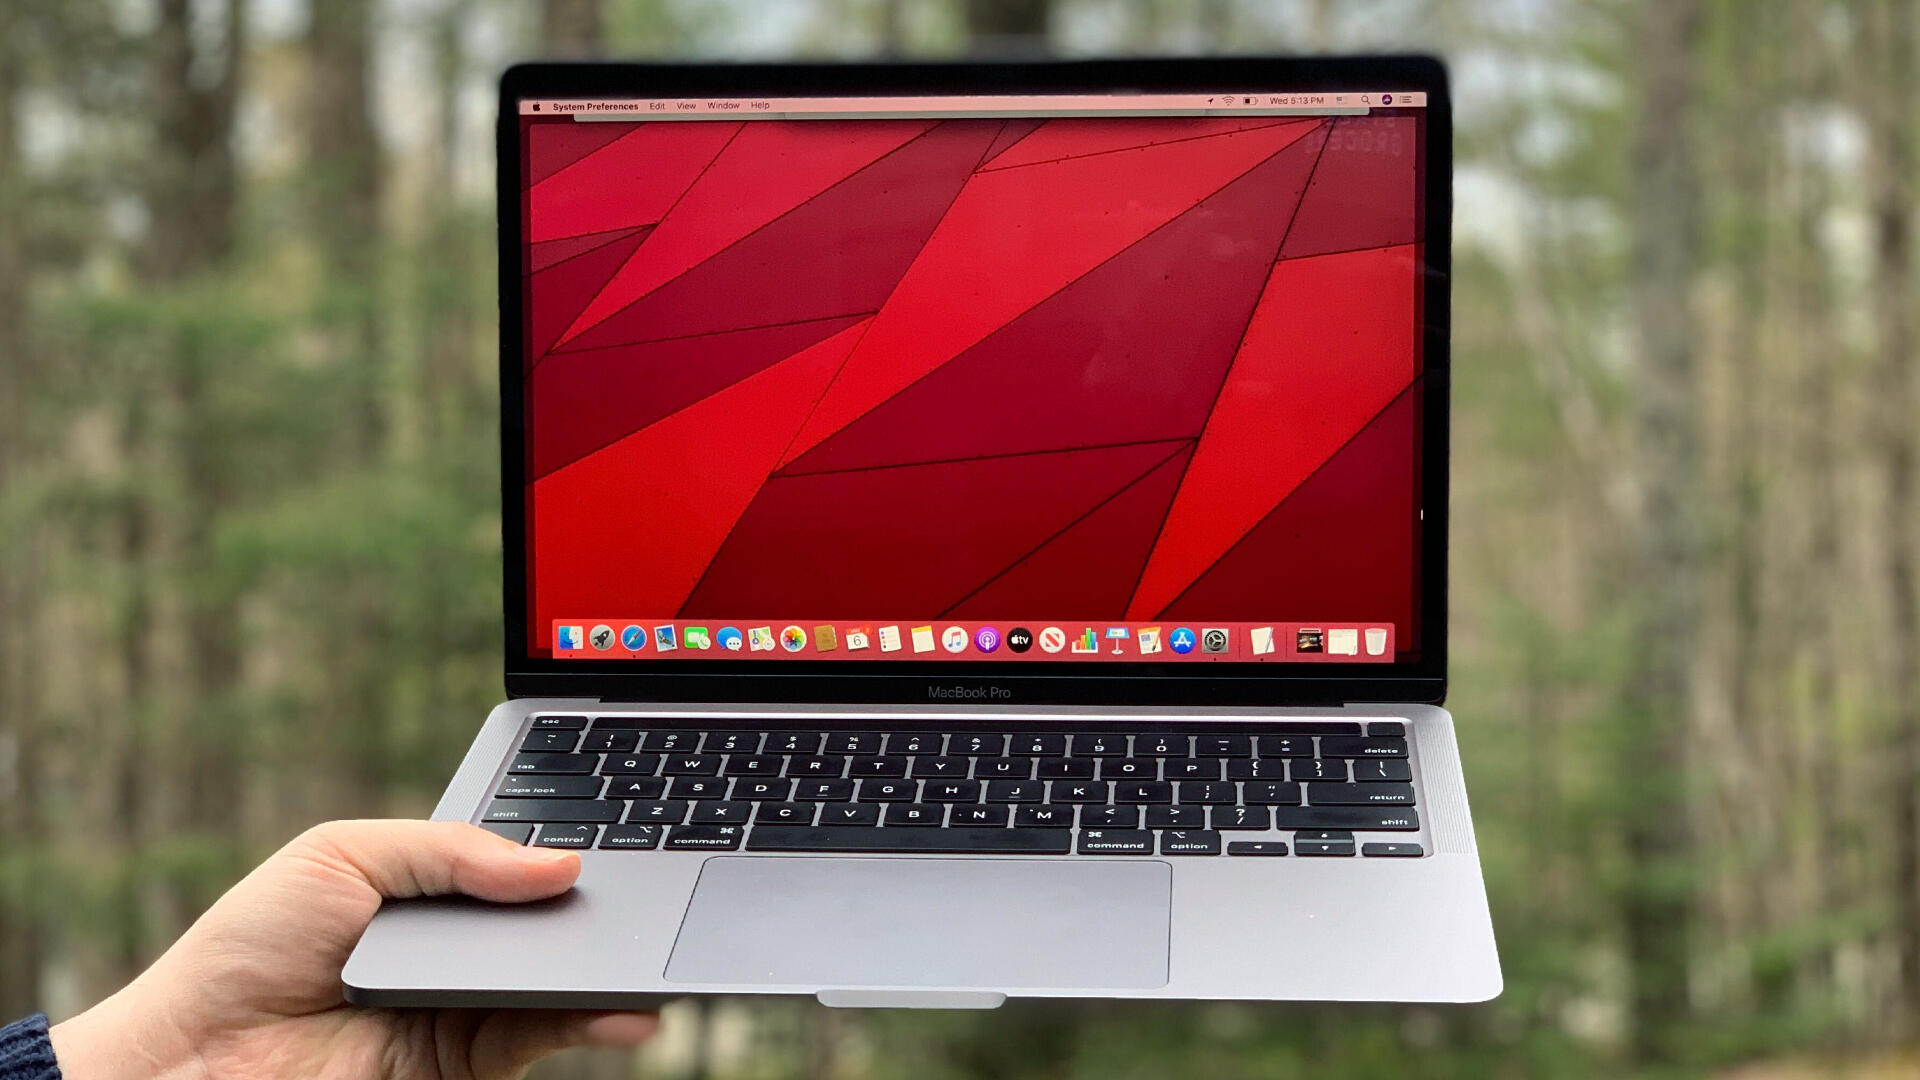 Video: Hands-on: The new MacBook Pro plays catch-up